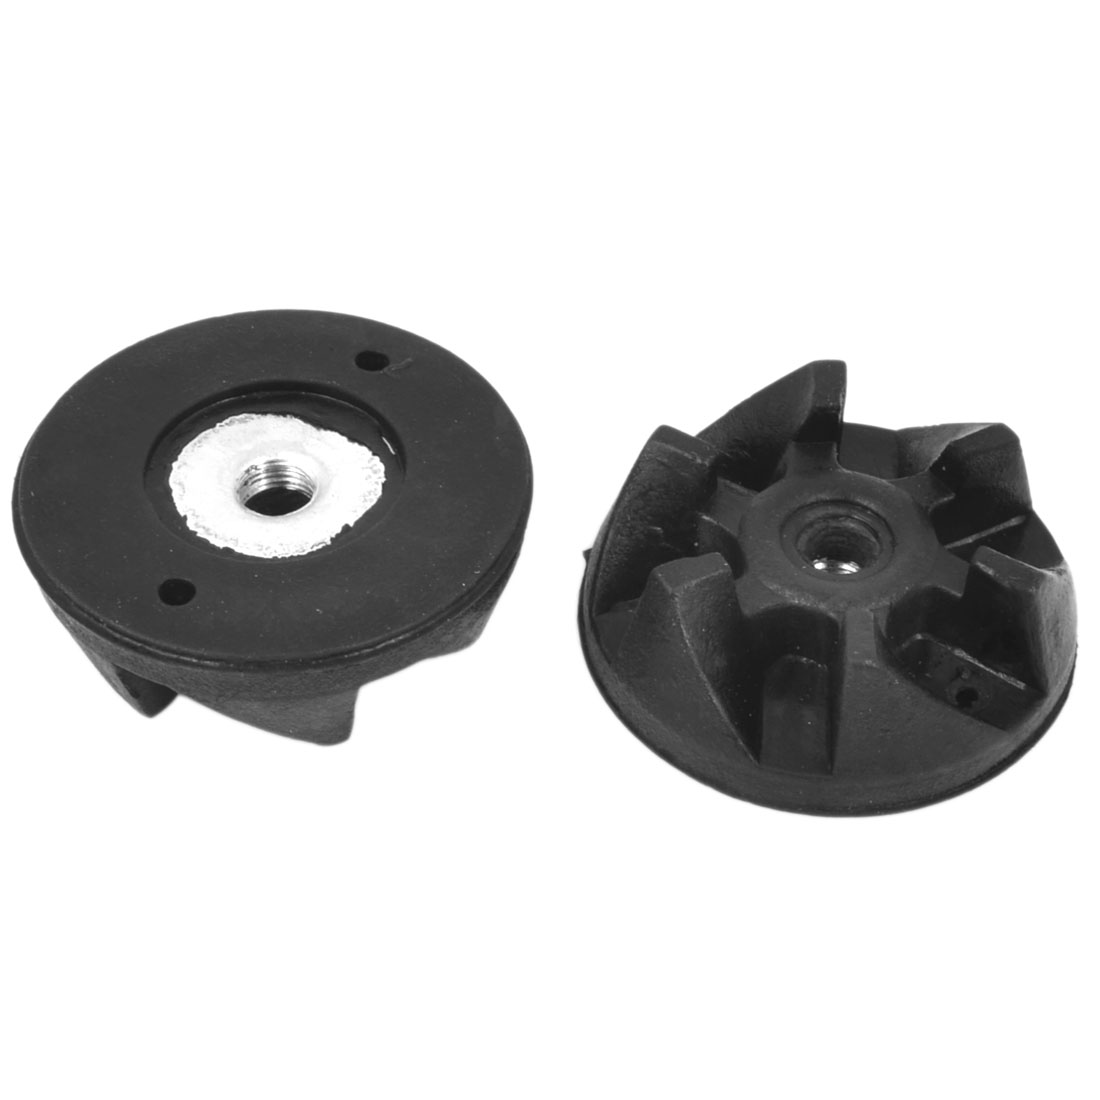 Home Kitchen Aid 6-Teeth Rubber Coupling Clutch Gear Black 2pcs 36mm Dia for Food Blender